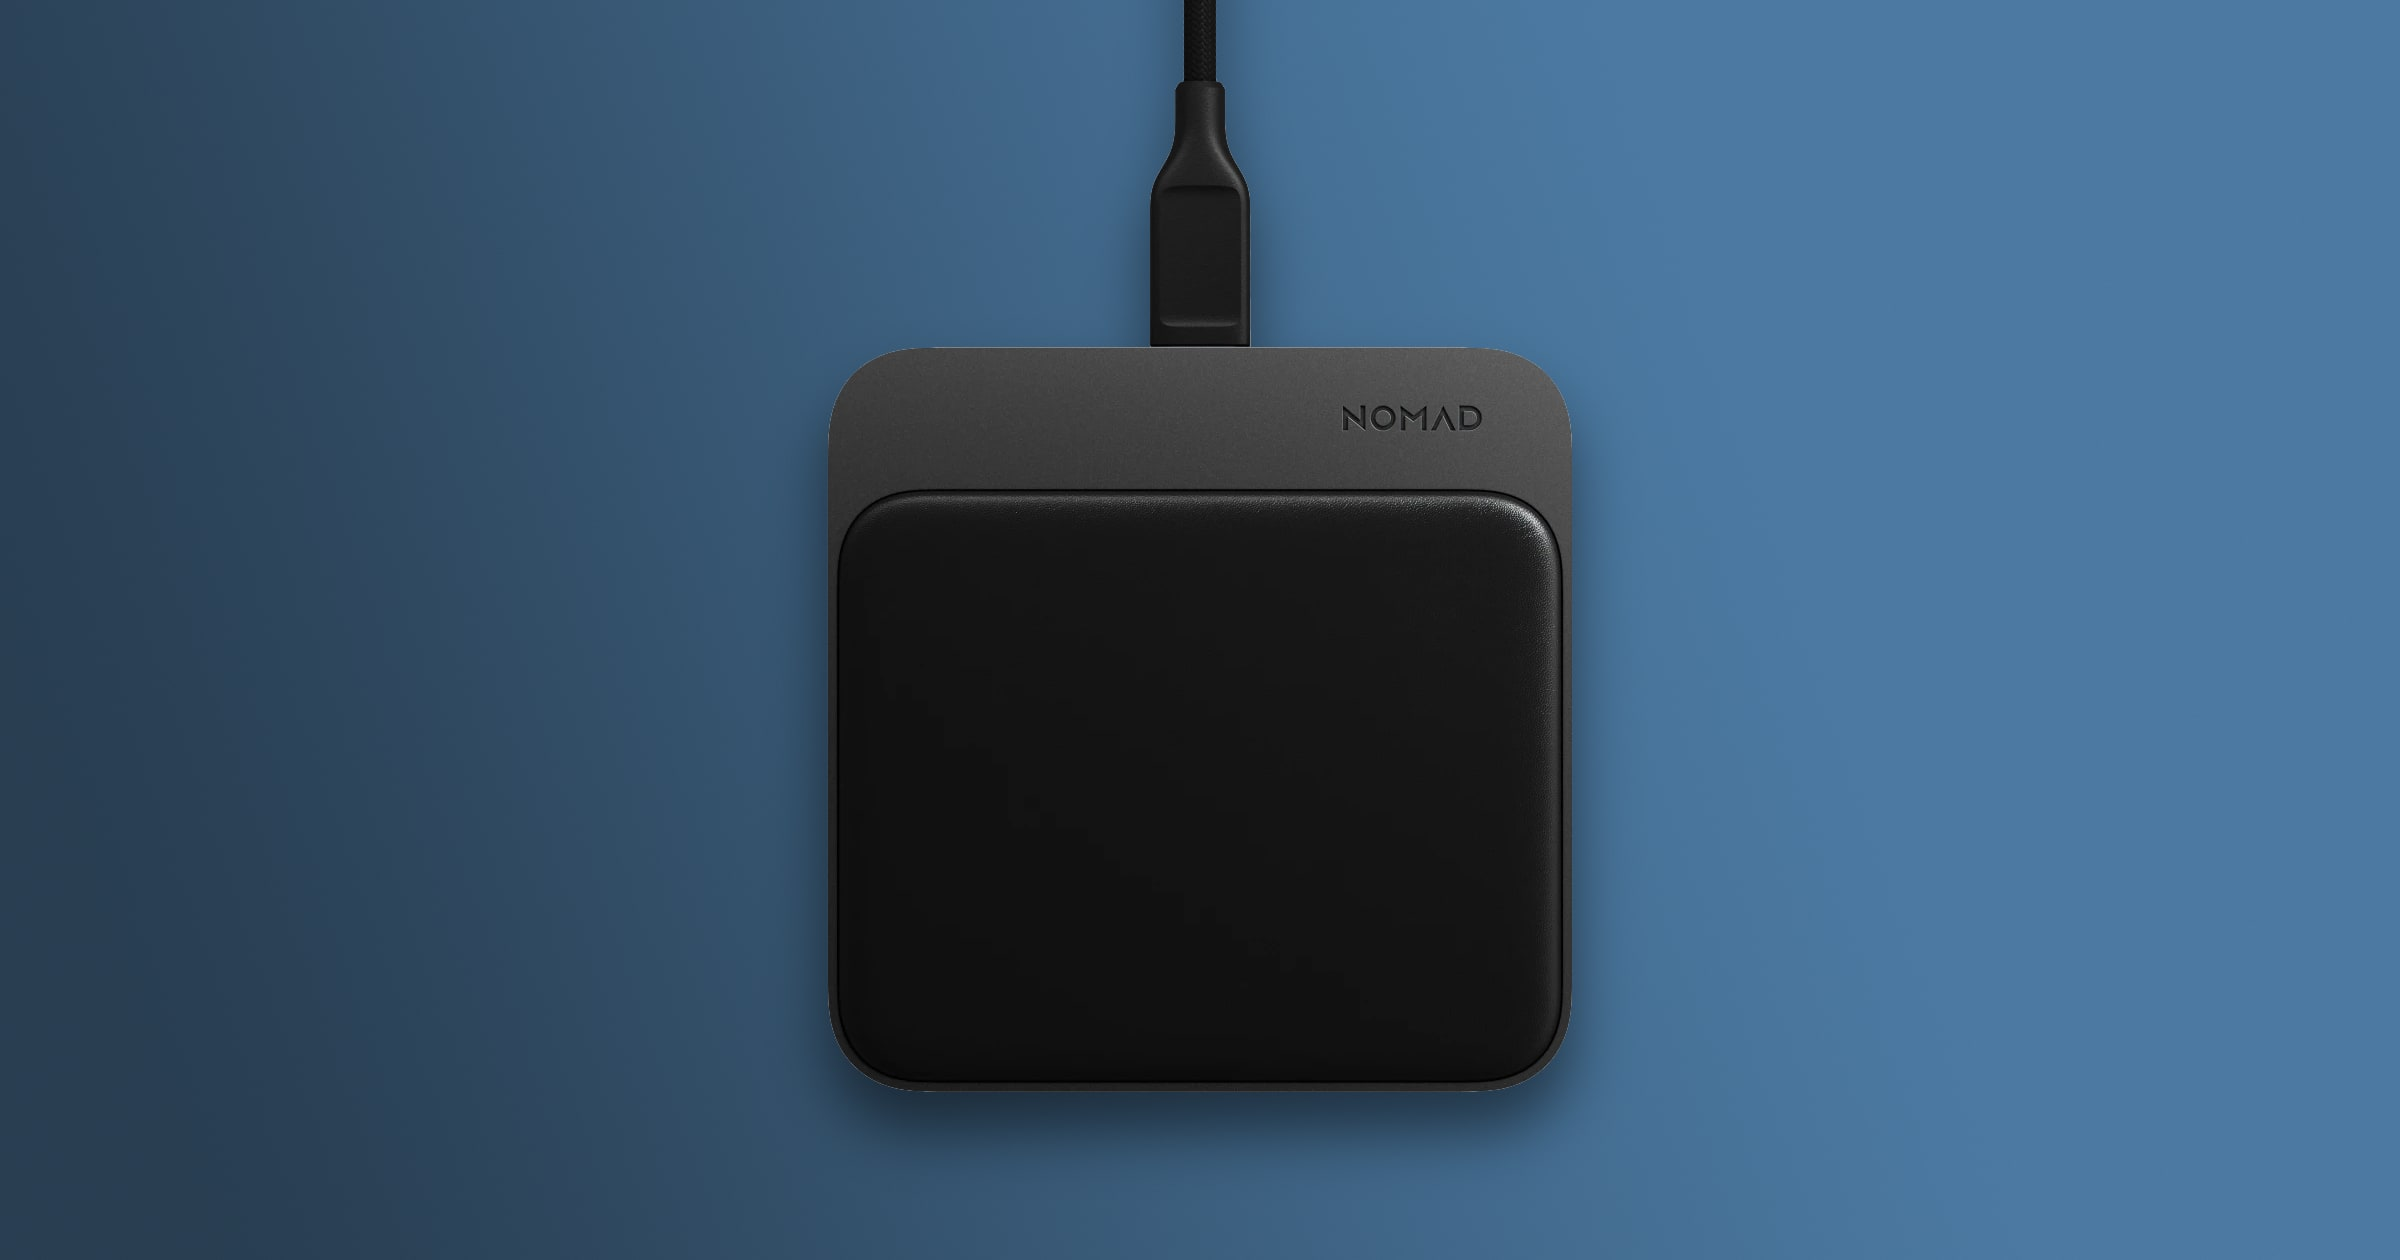 Nomad Updates Base Station Mini Charger With MagSafe